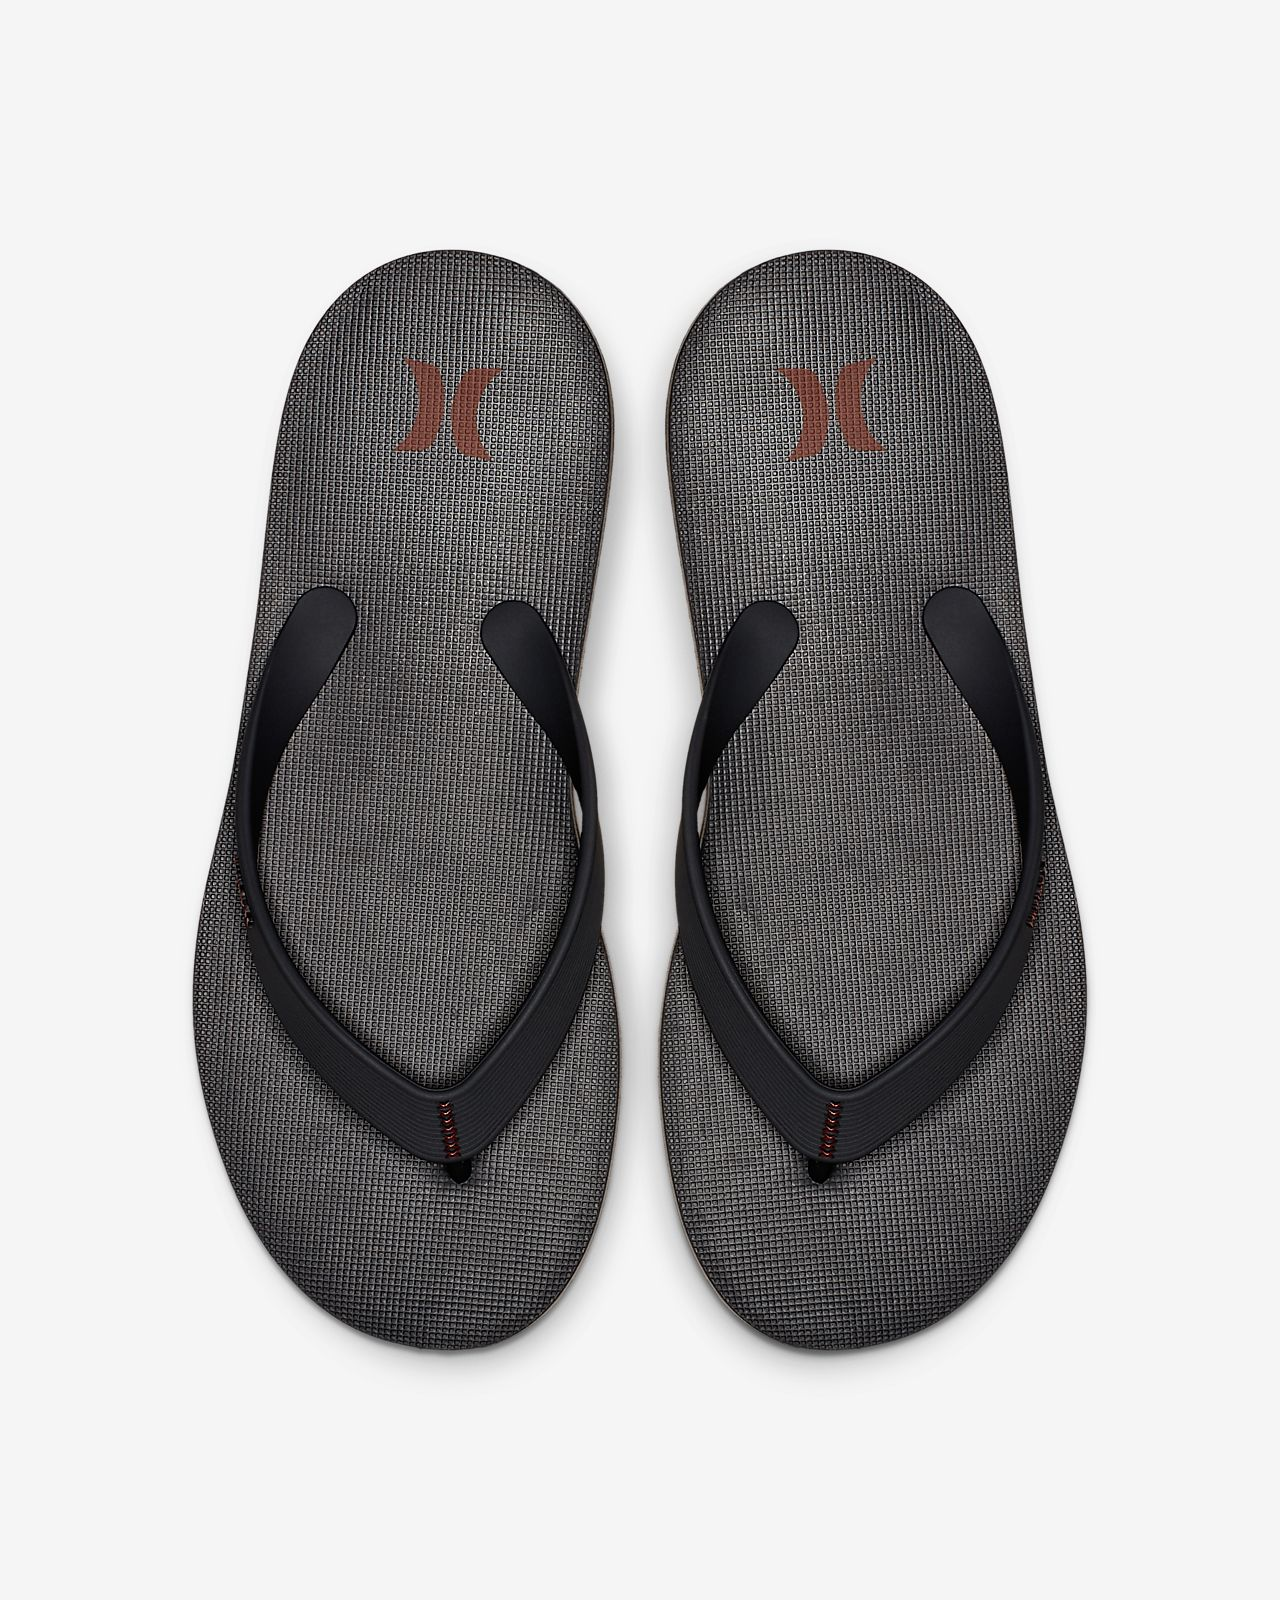 9a47e374658e Hurley One And Only Men s Sandal. Nike.com